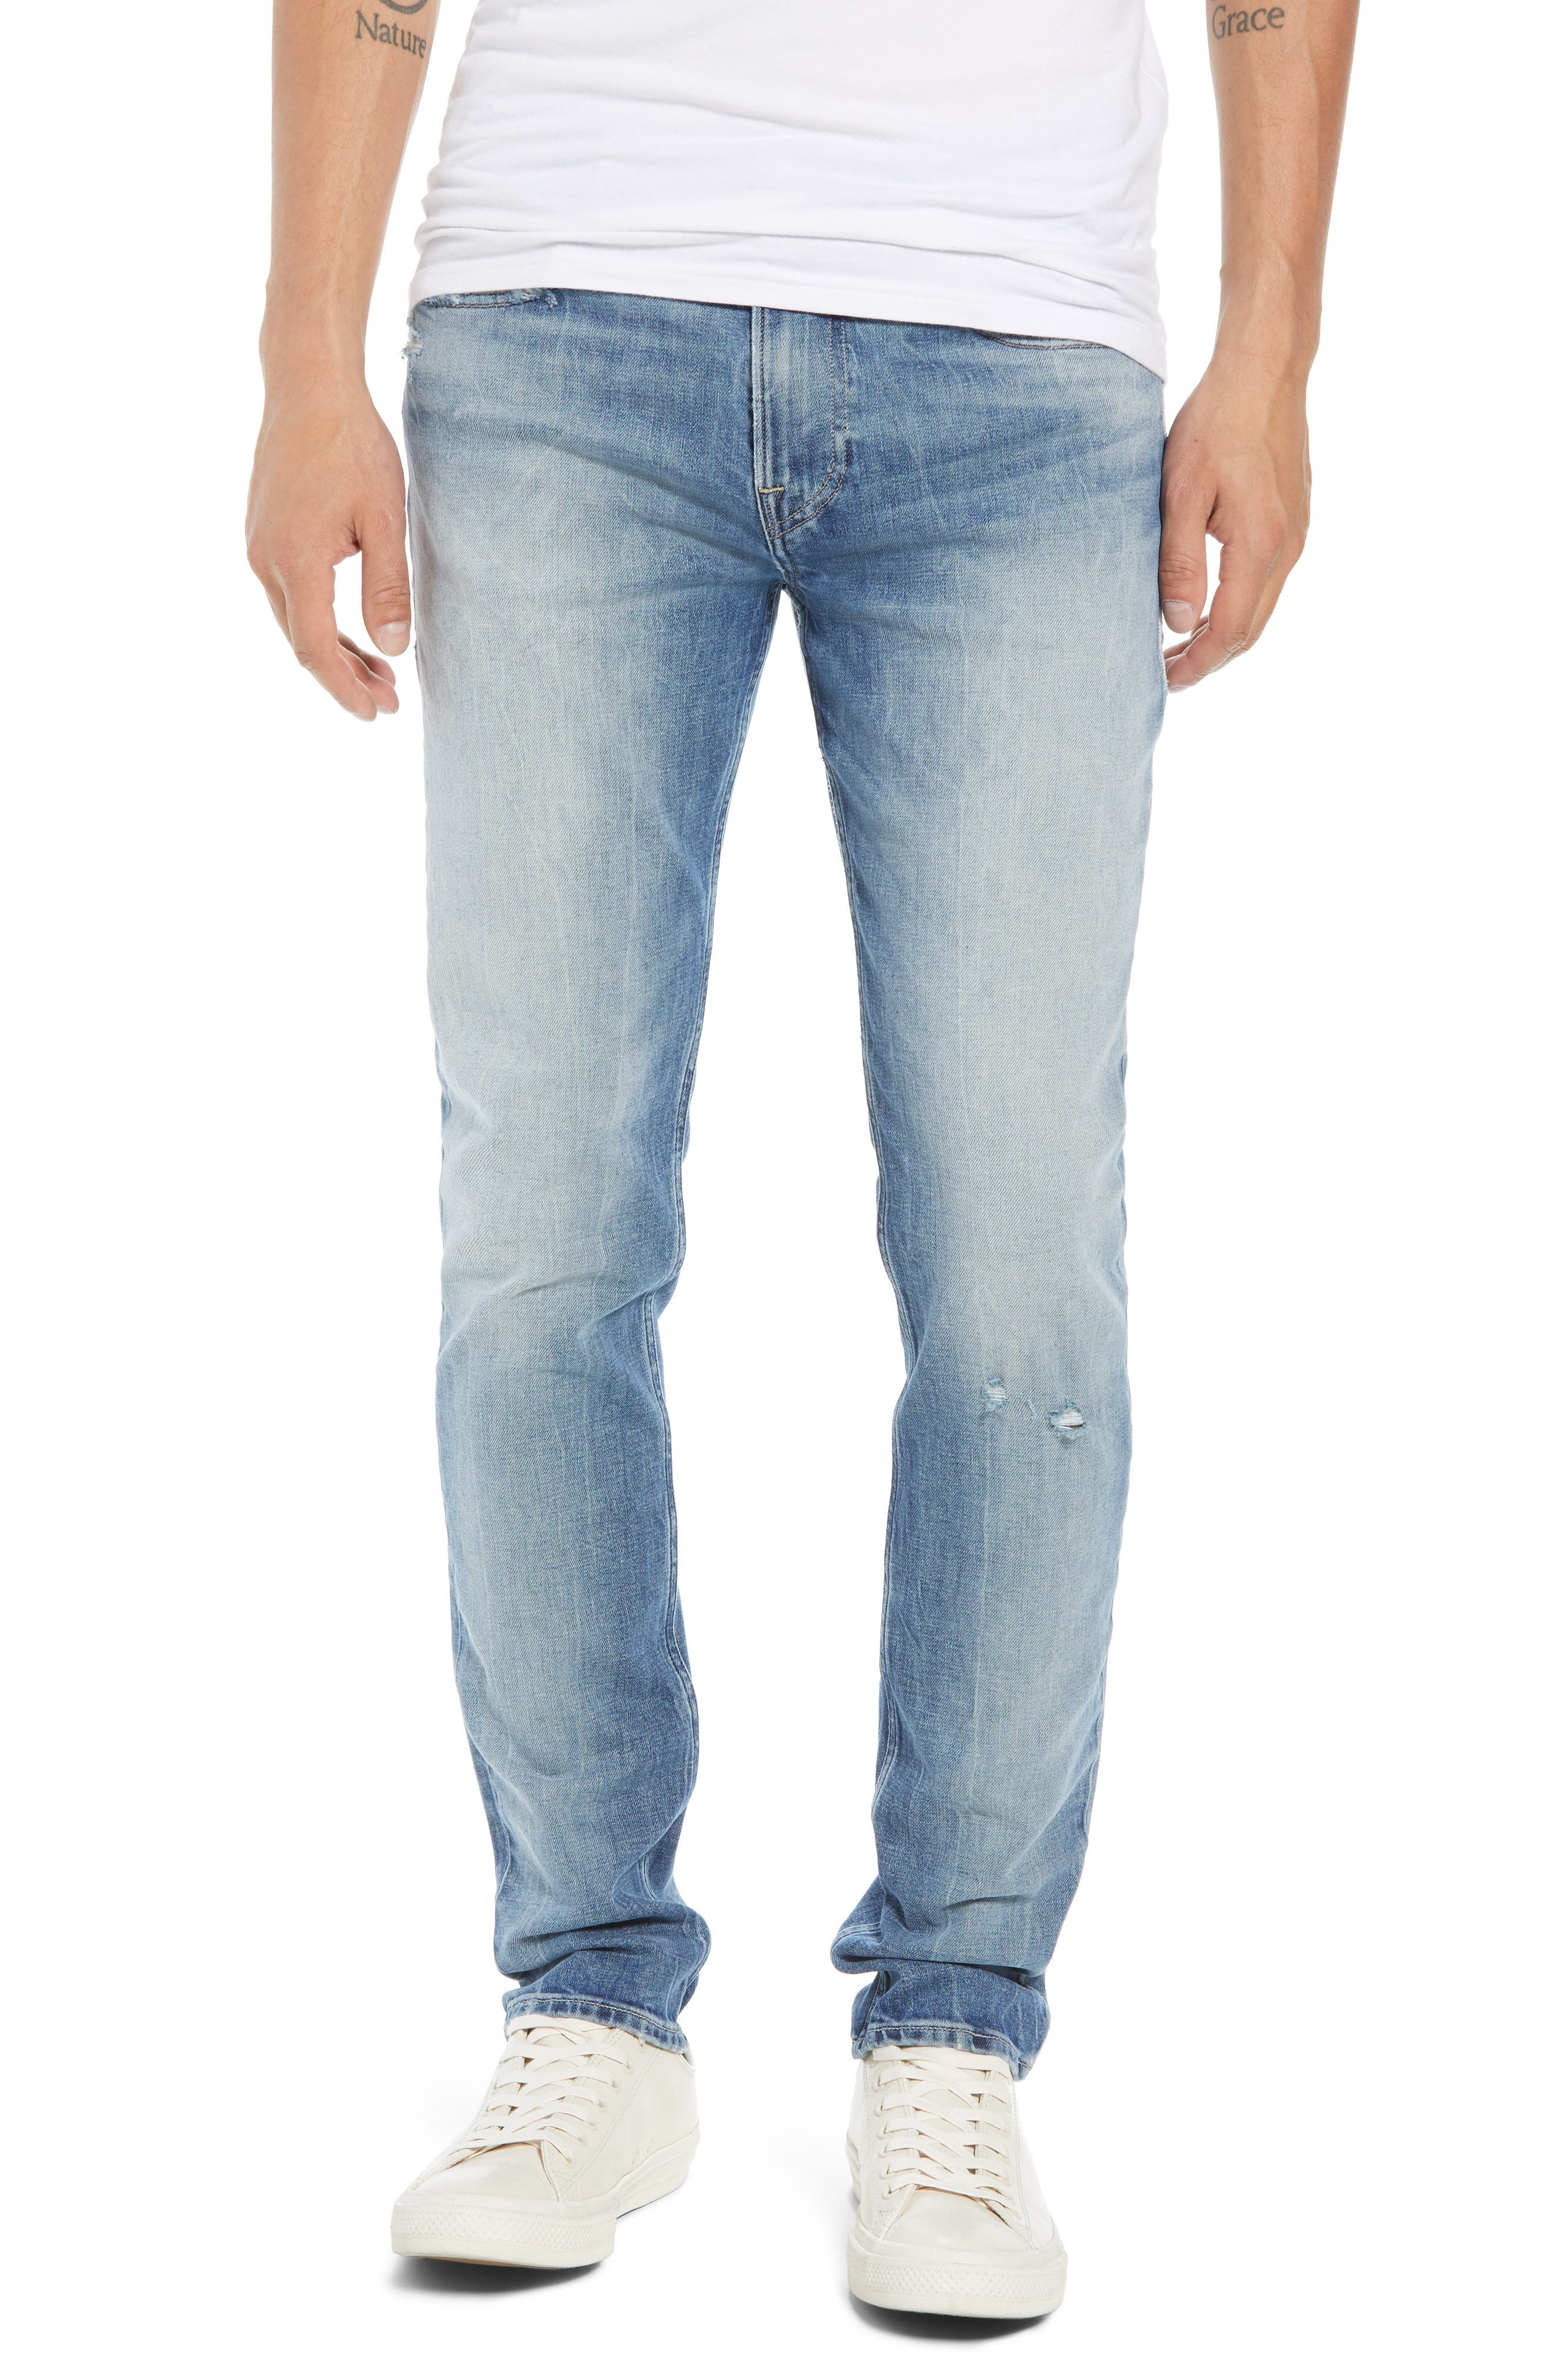 Axl Skinny Fit Jeans,                         Main,                         color, GIBSON